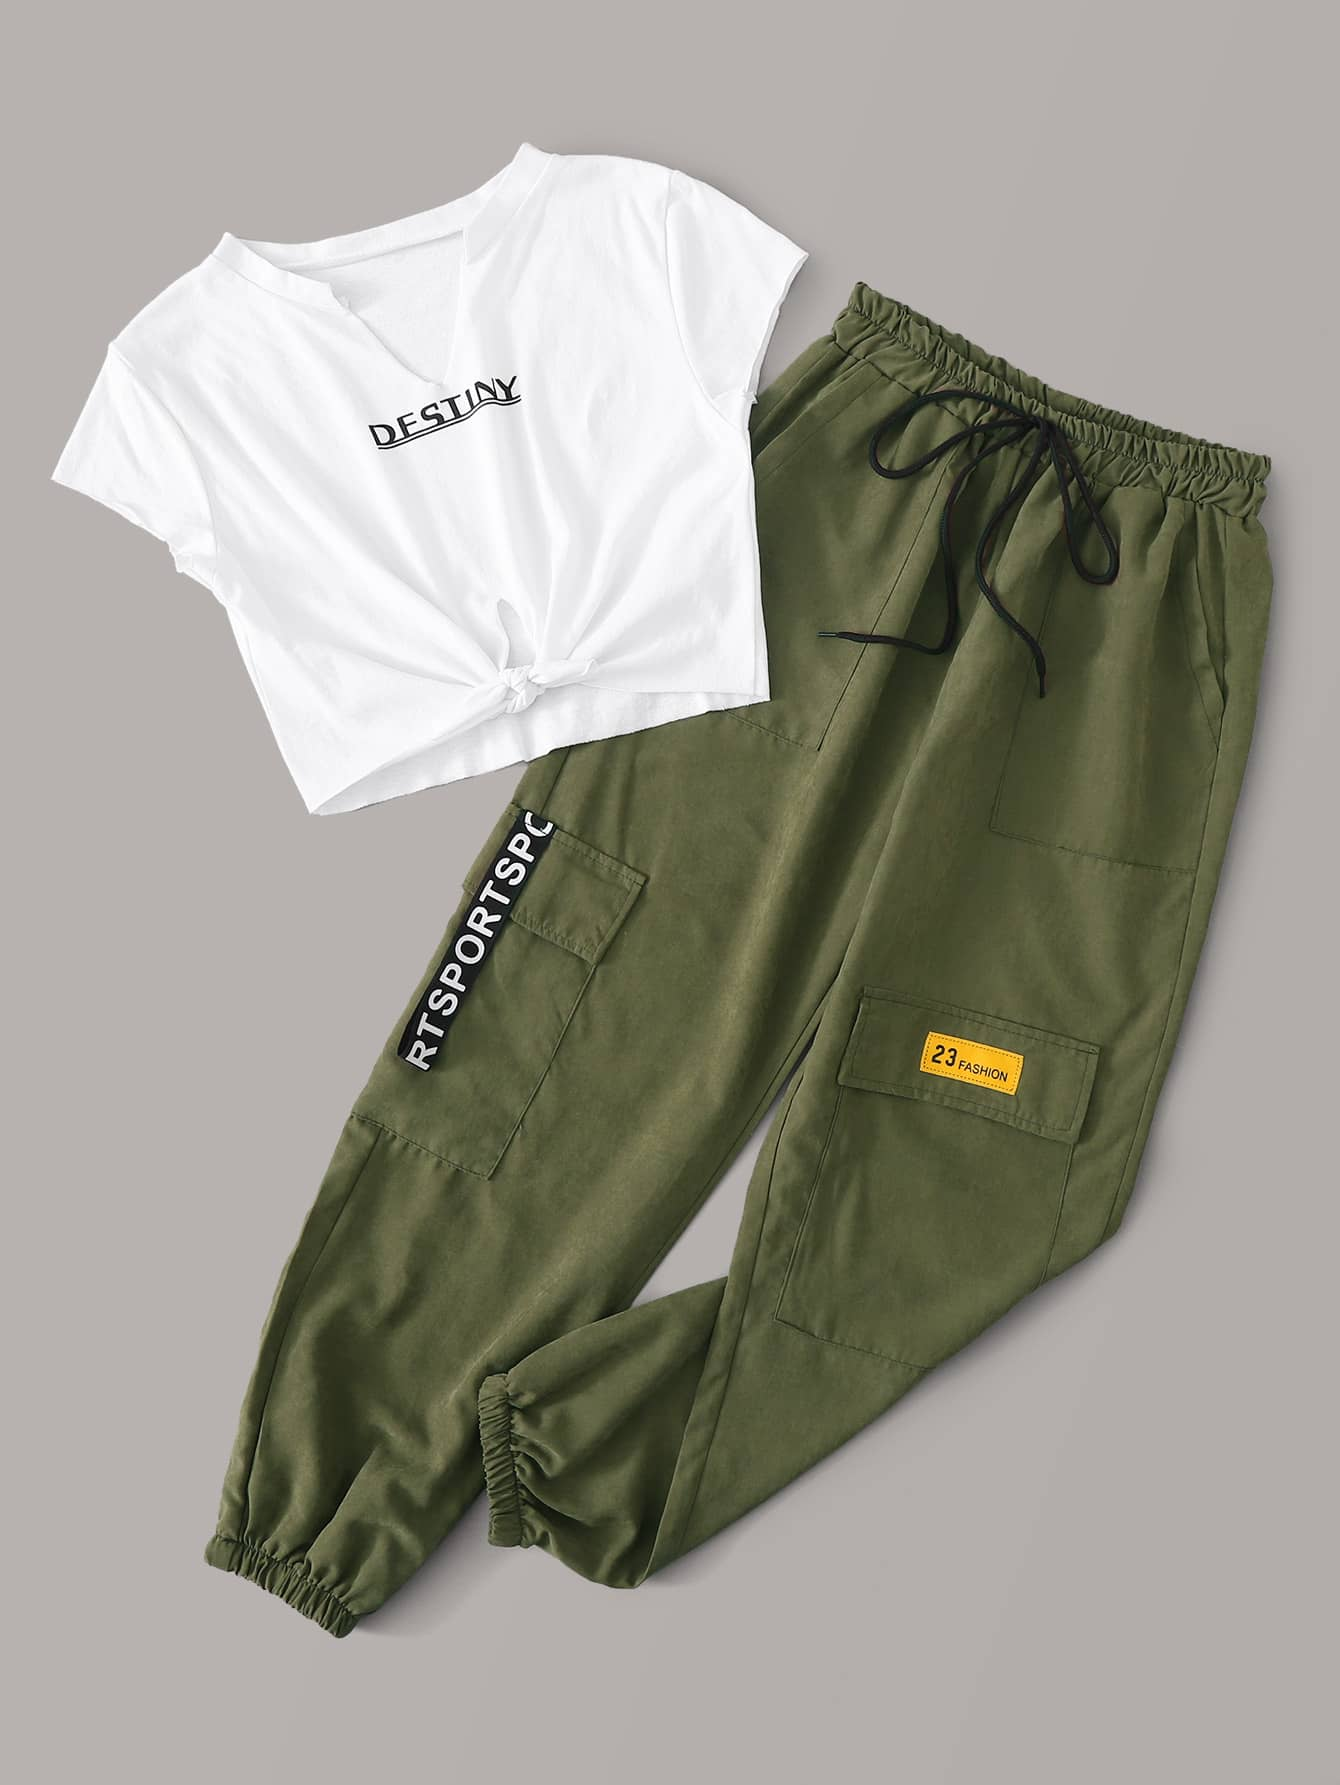 Letter Graphic Knot Hem Tee With Cargo Pants - FLJ CORPORATIONS